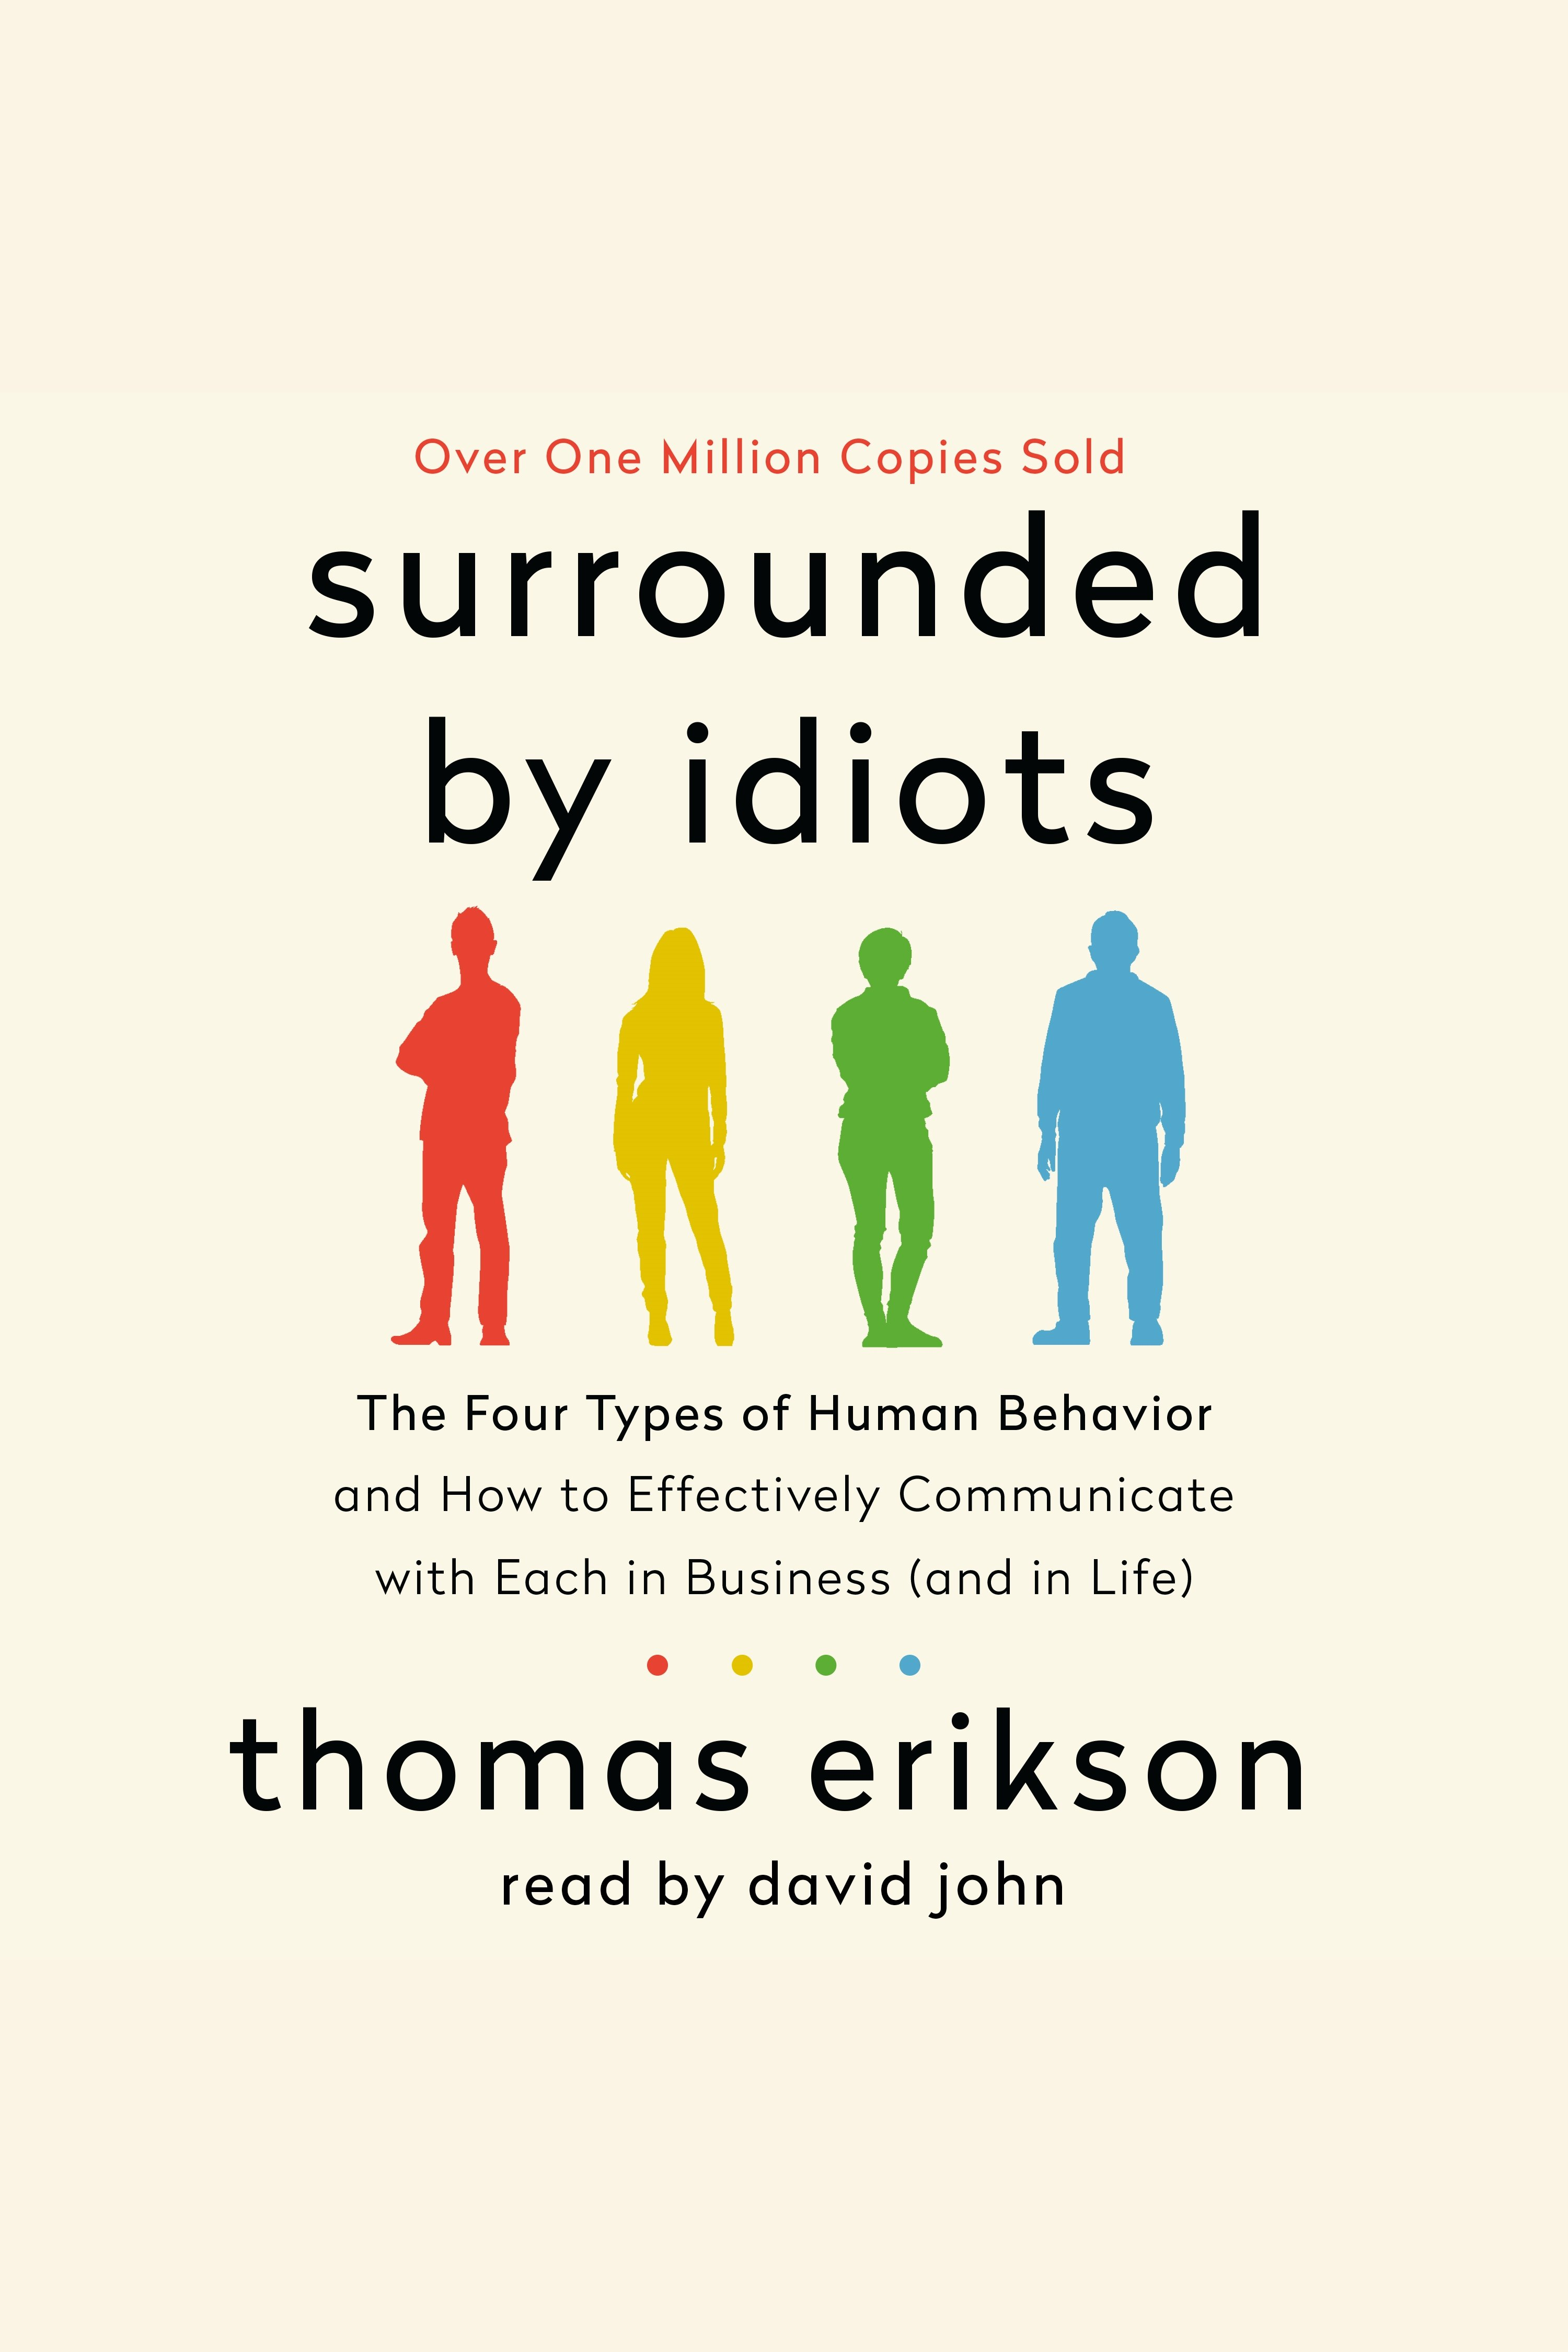 Surrounded by Idiots The Four Types of Human Behavior and How to Effectively Communicate with Each in Business (and in Life) cover image